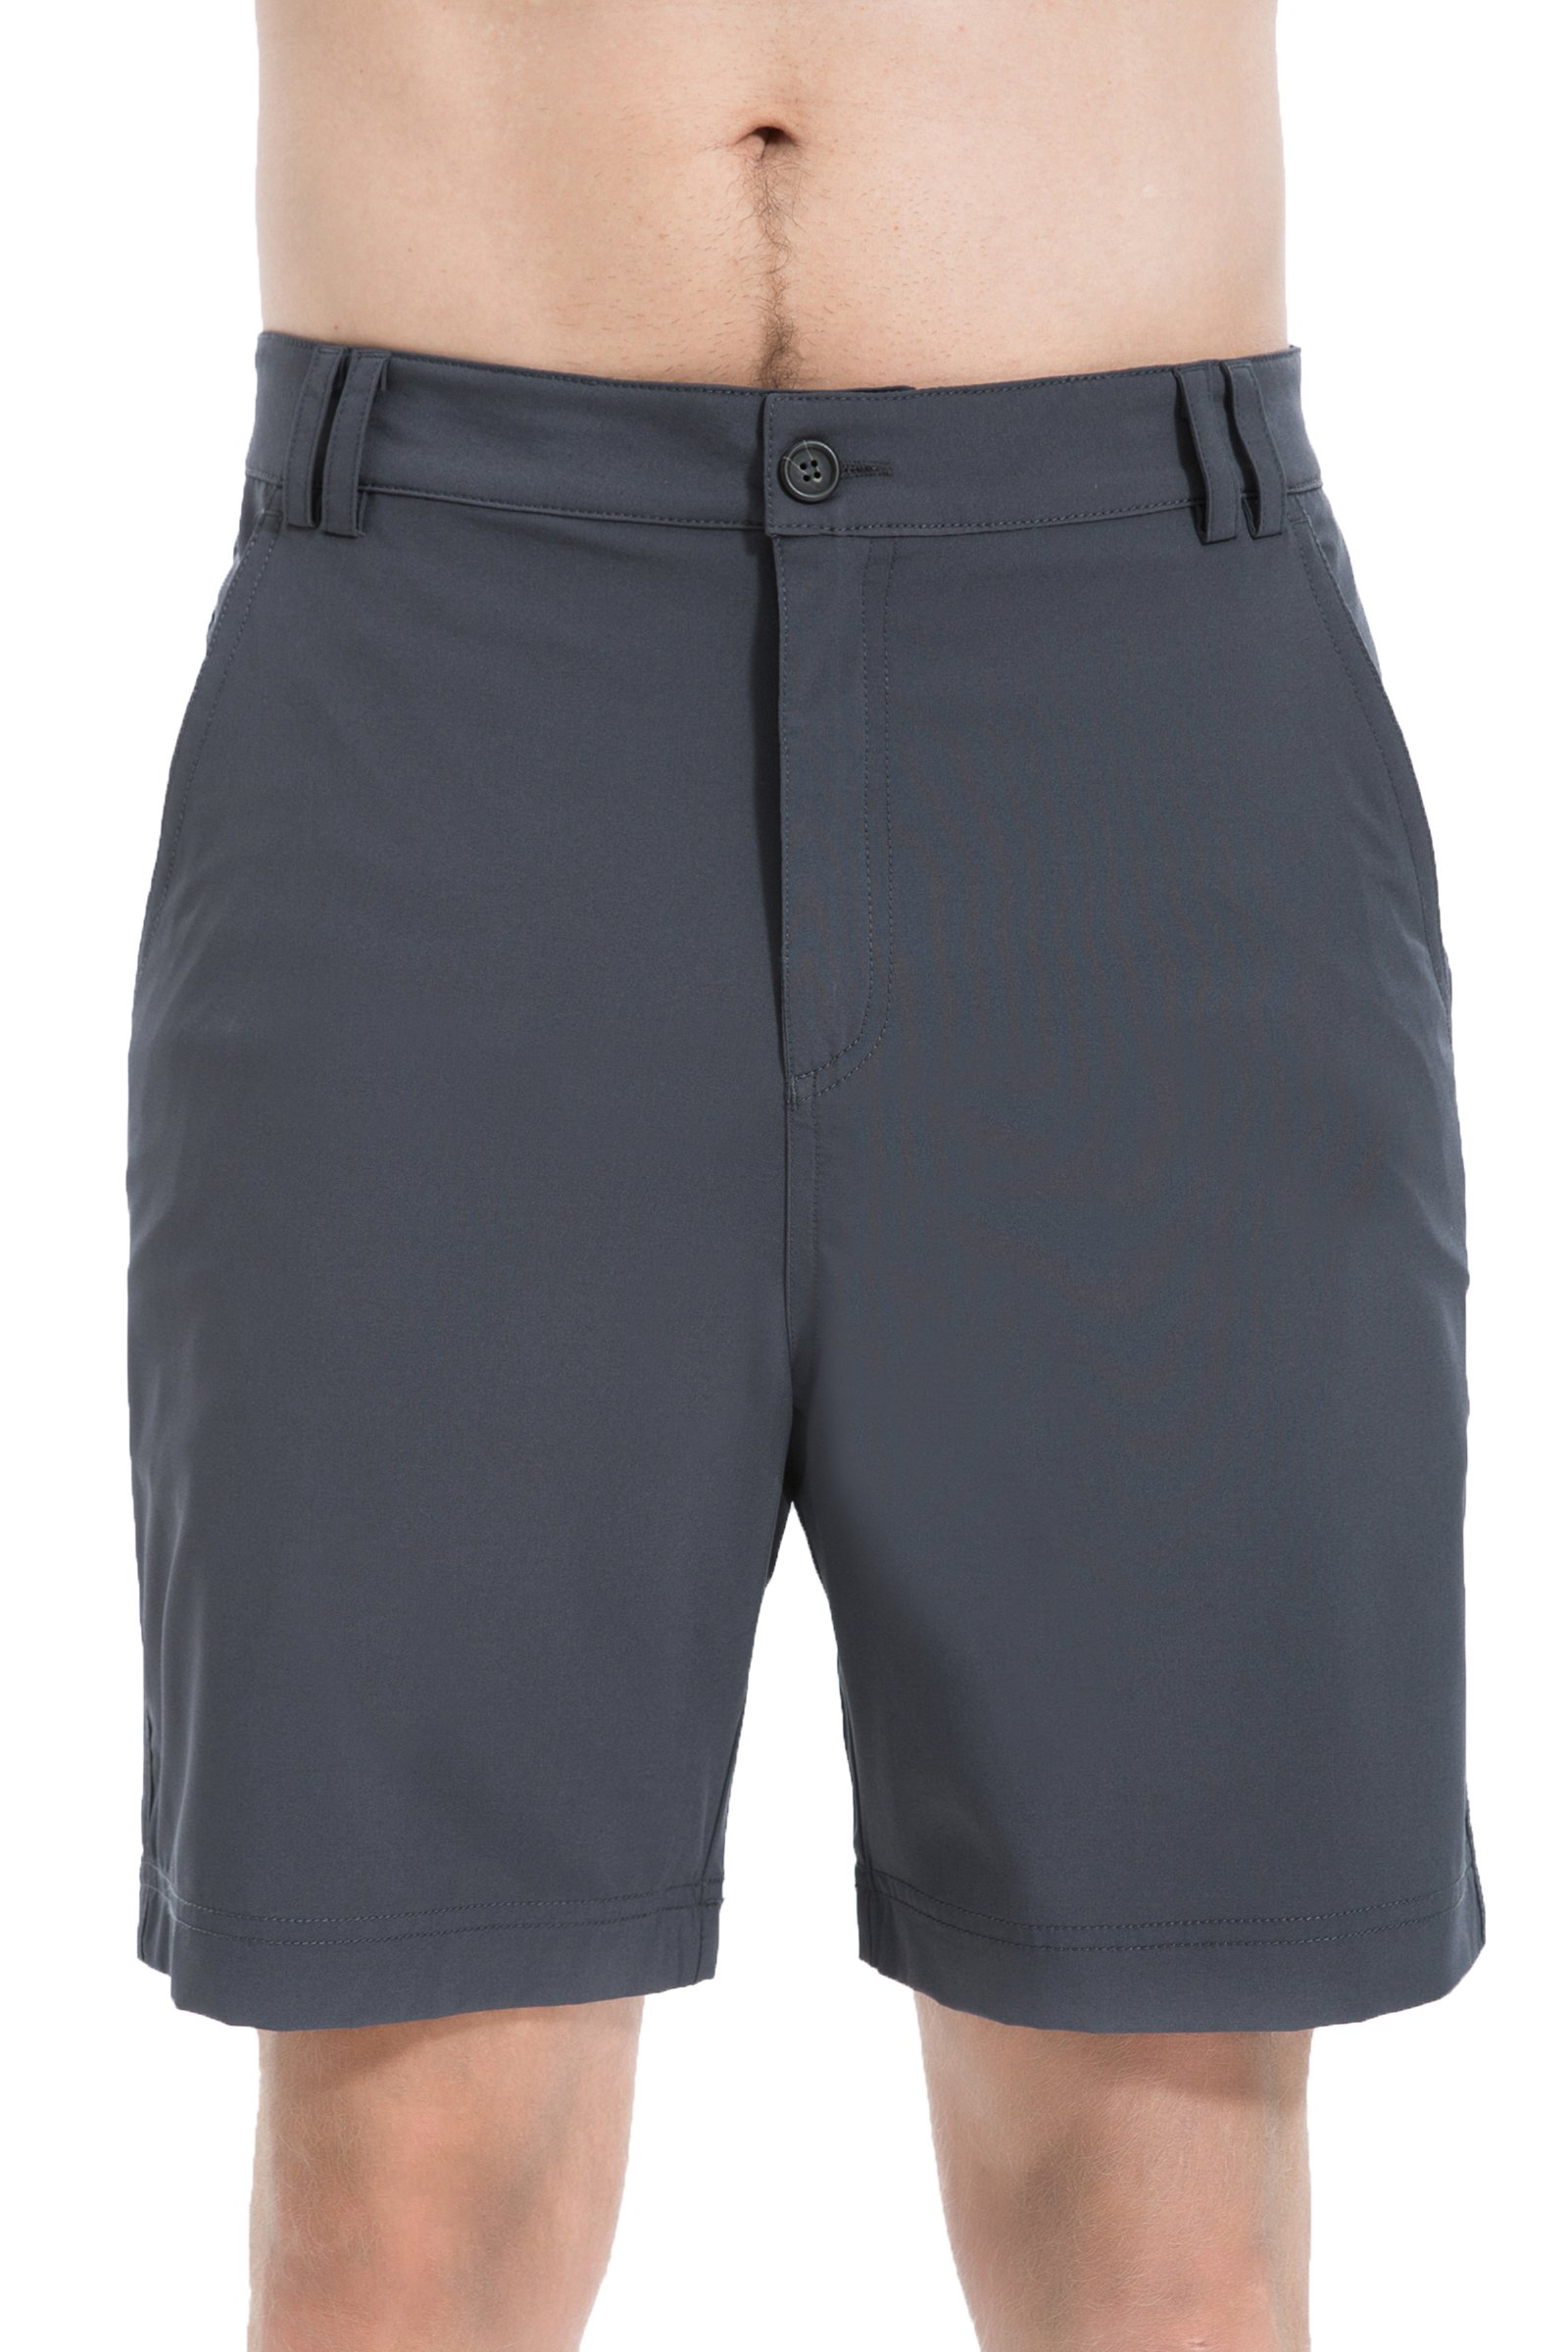 Trailside Supply Co. Men's Ripstop Basic Stretchy Casual Short-Charcoal-34